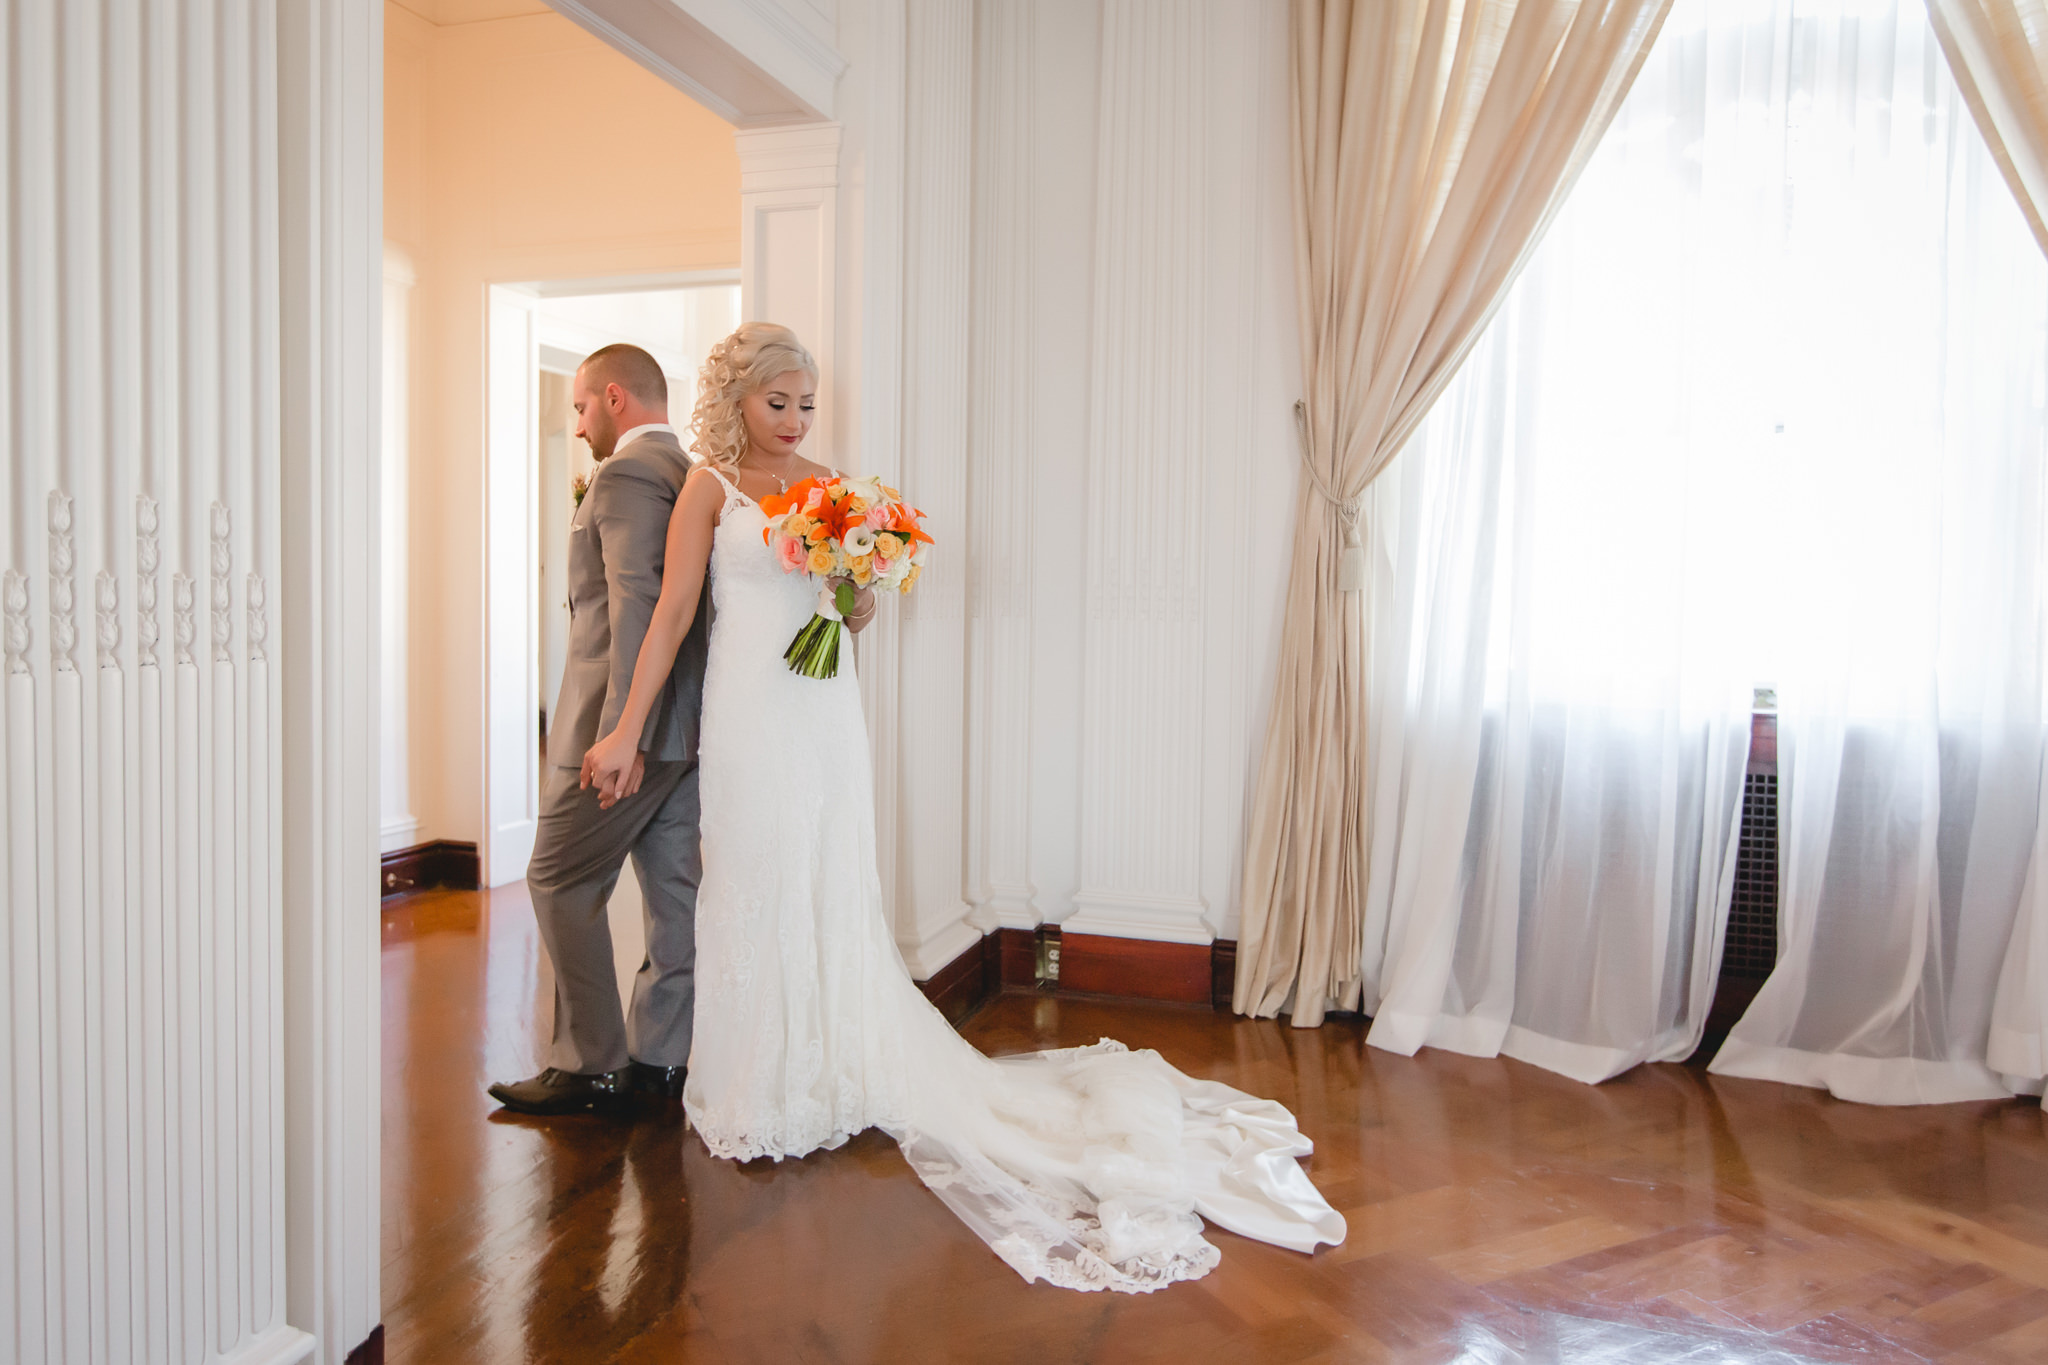 Bride and groom do a first touch around a doorway before their ceremony